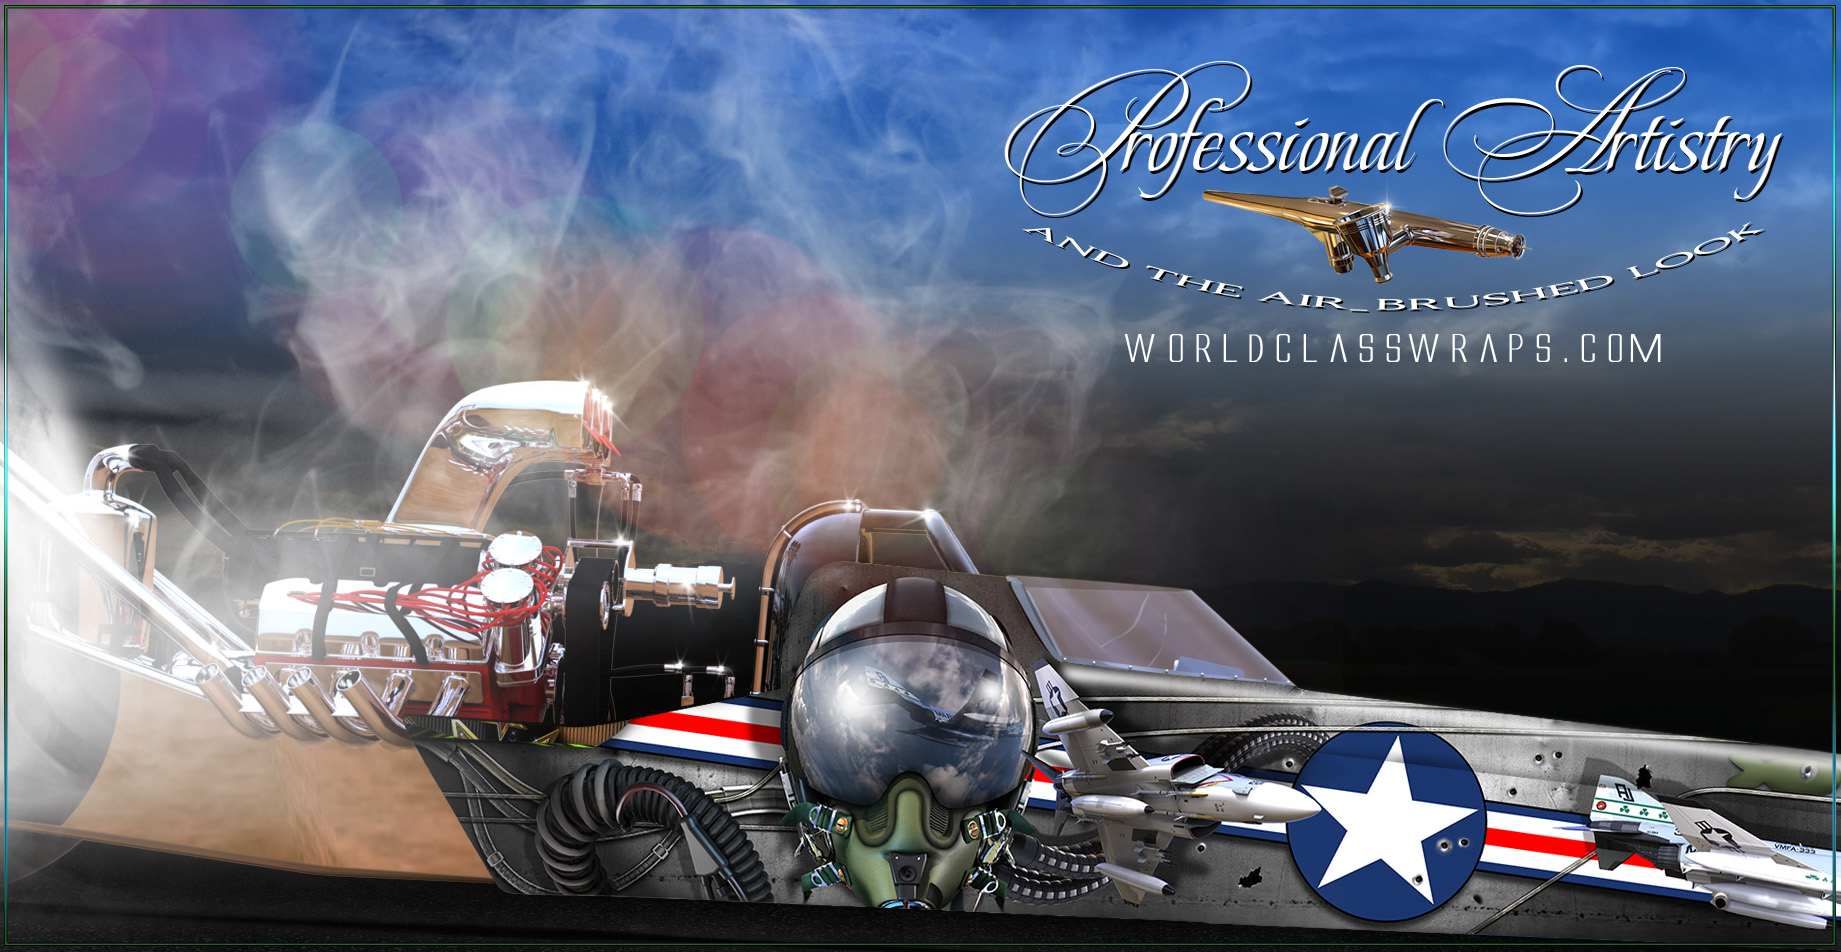 jet pilot dragster wrap close-up image